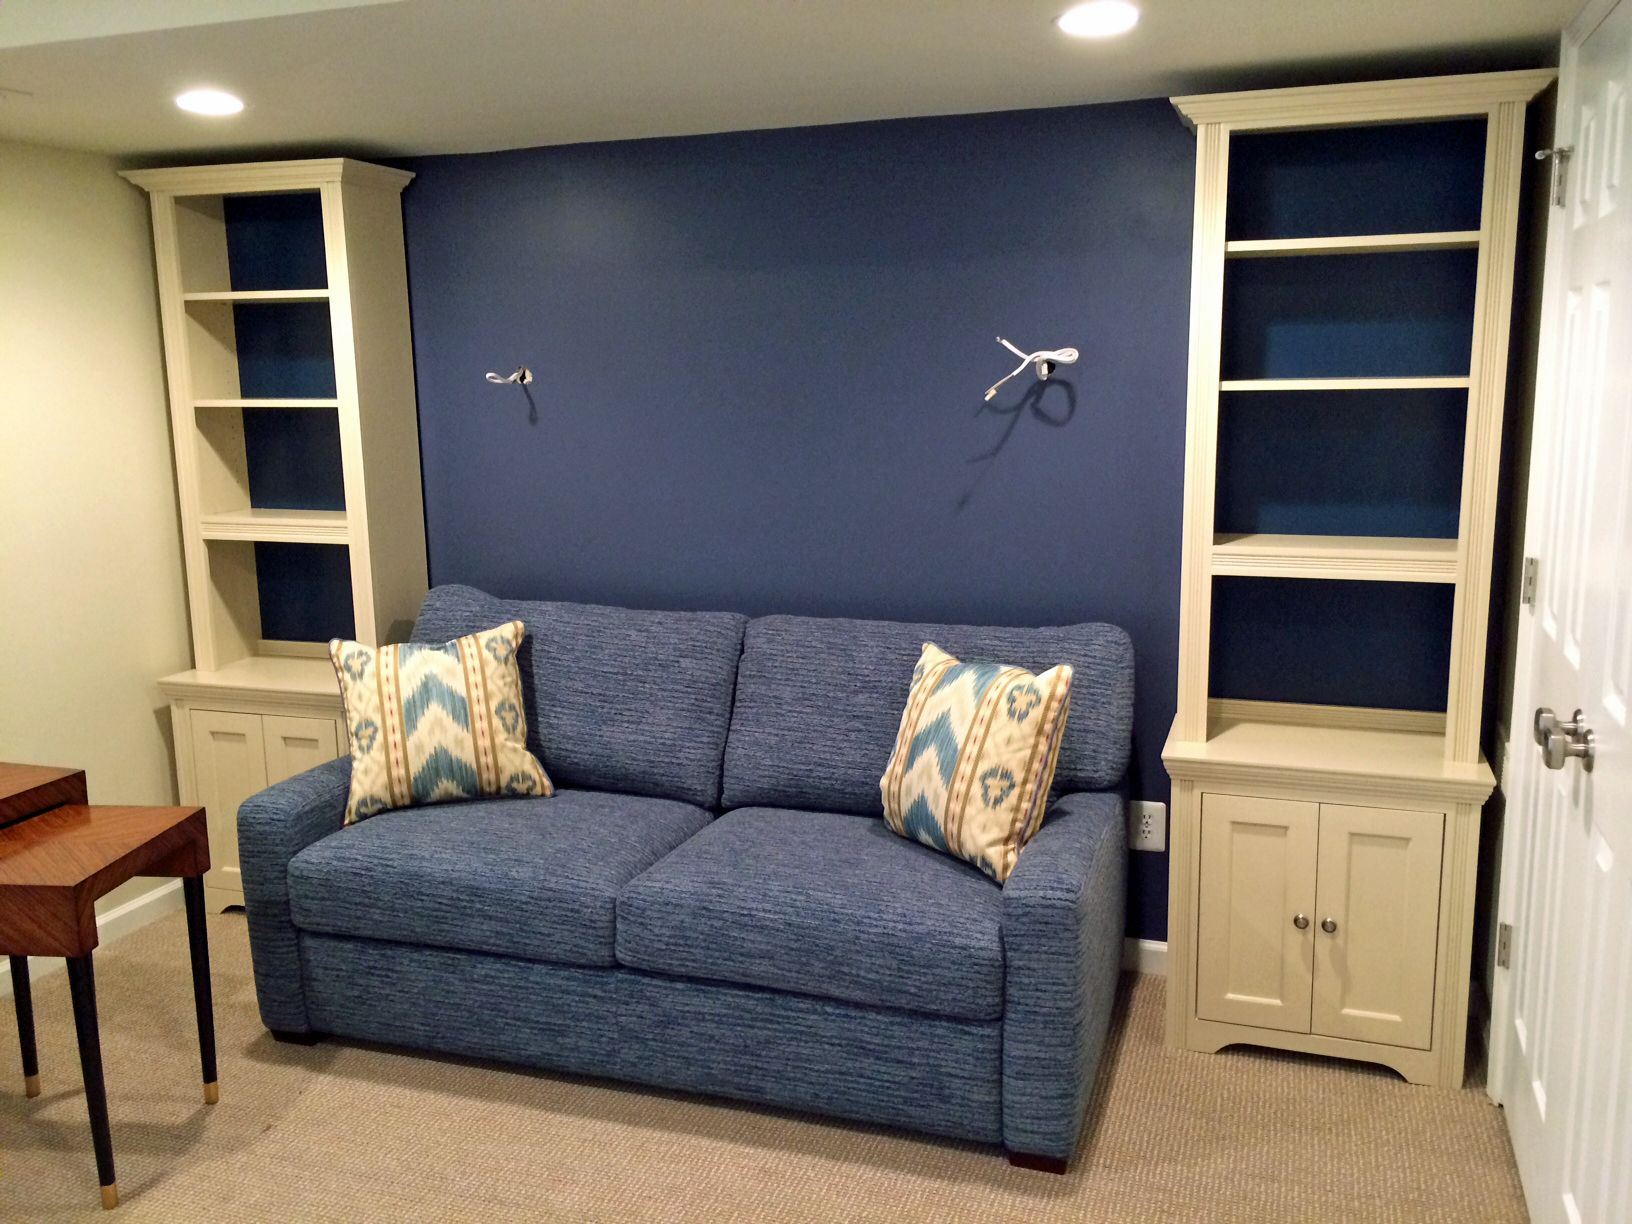 Inwood Furniture Maple units painted with General Finishes Linen